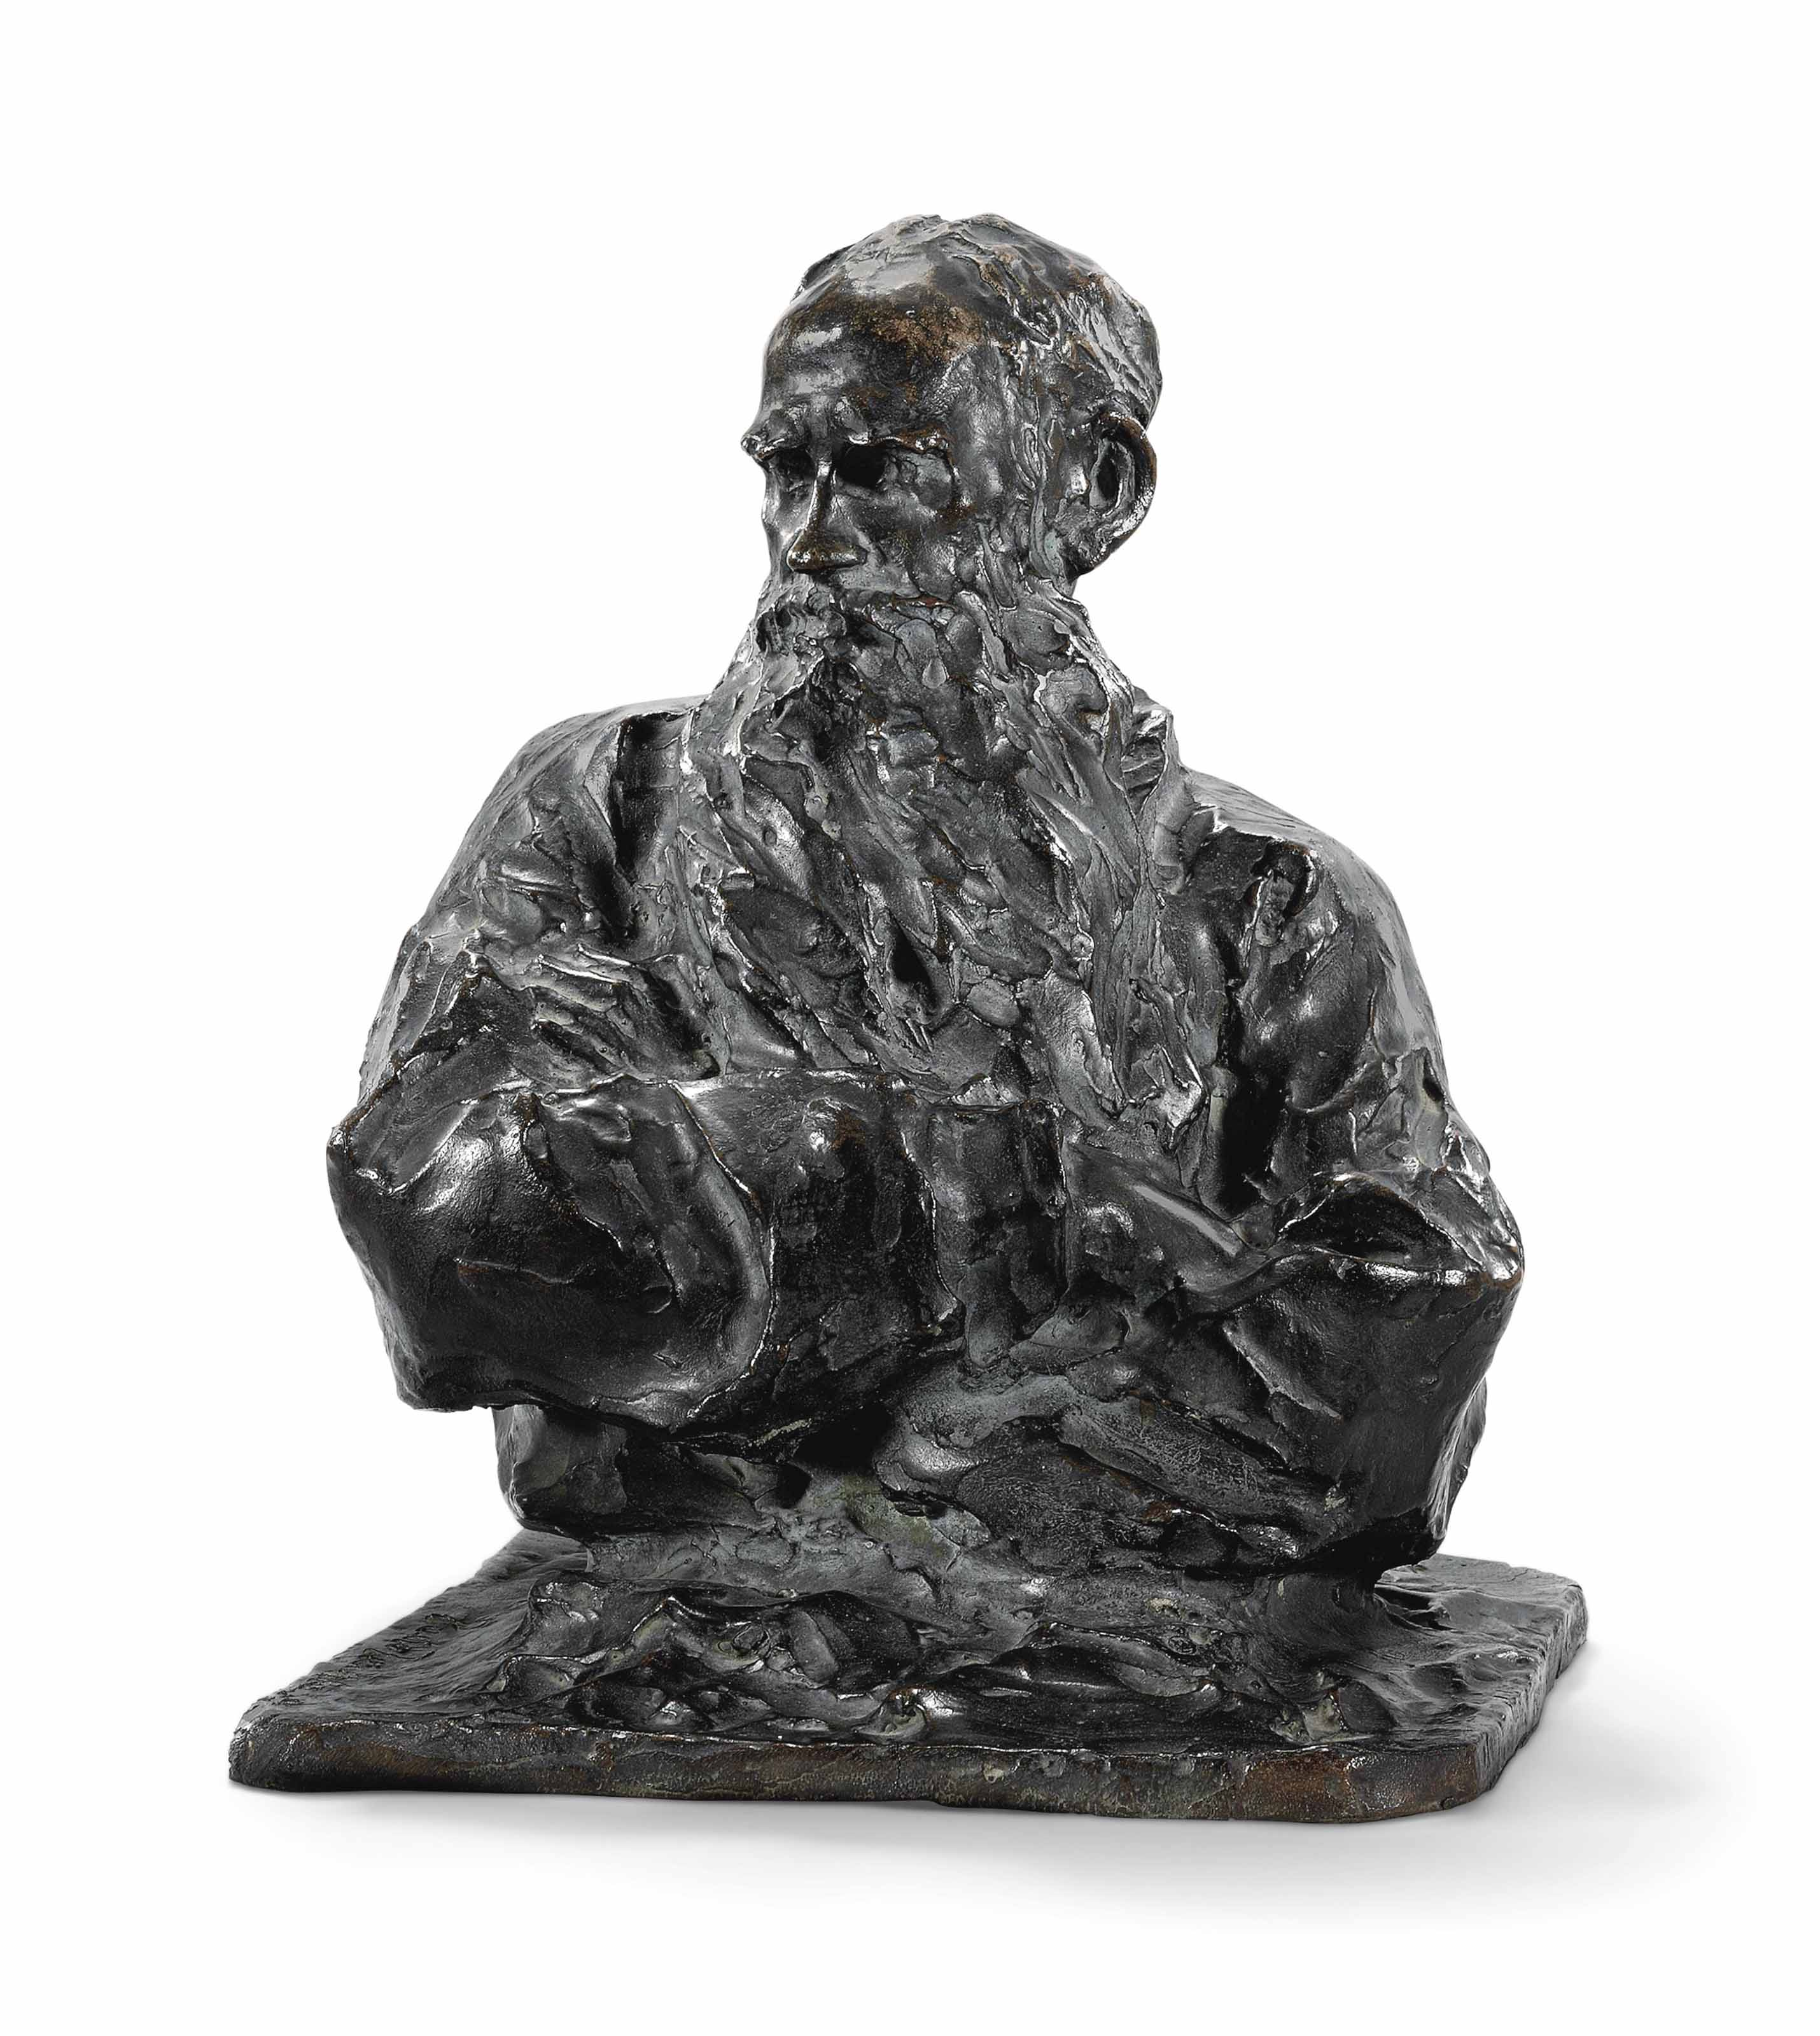 BUST OF COUNT LEV TOLSTOY (1828-1910)